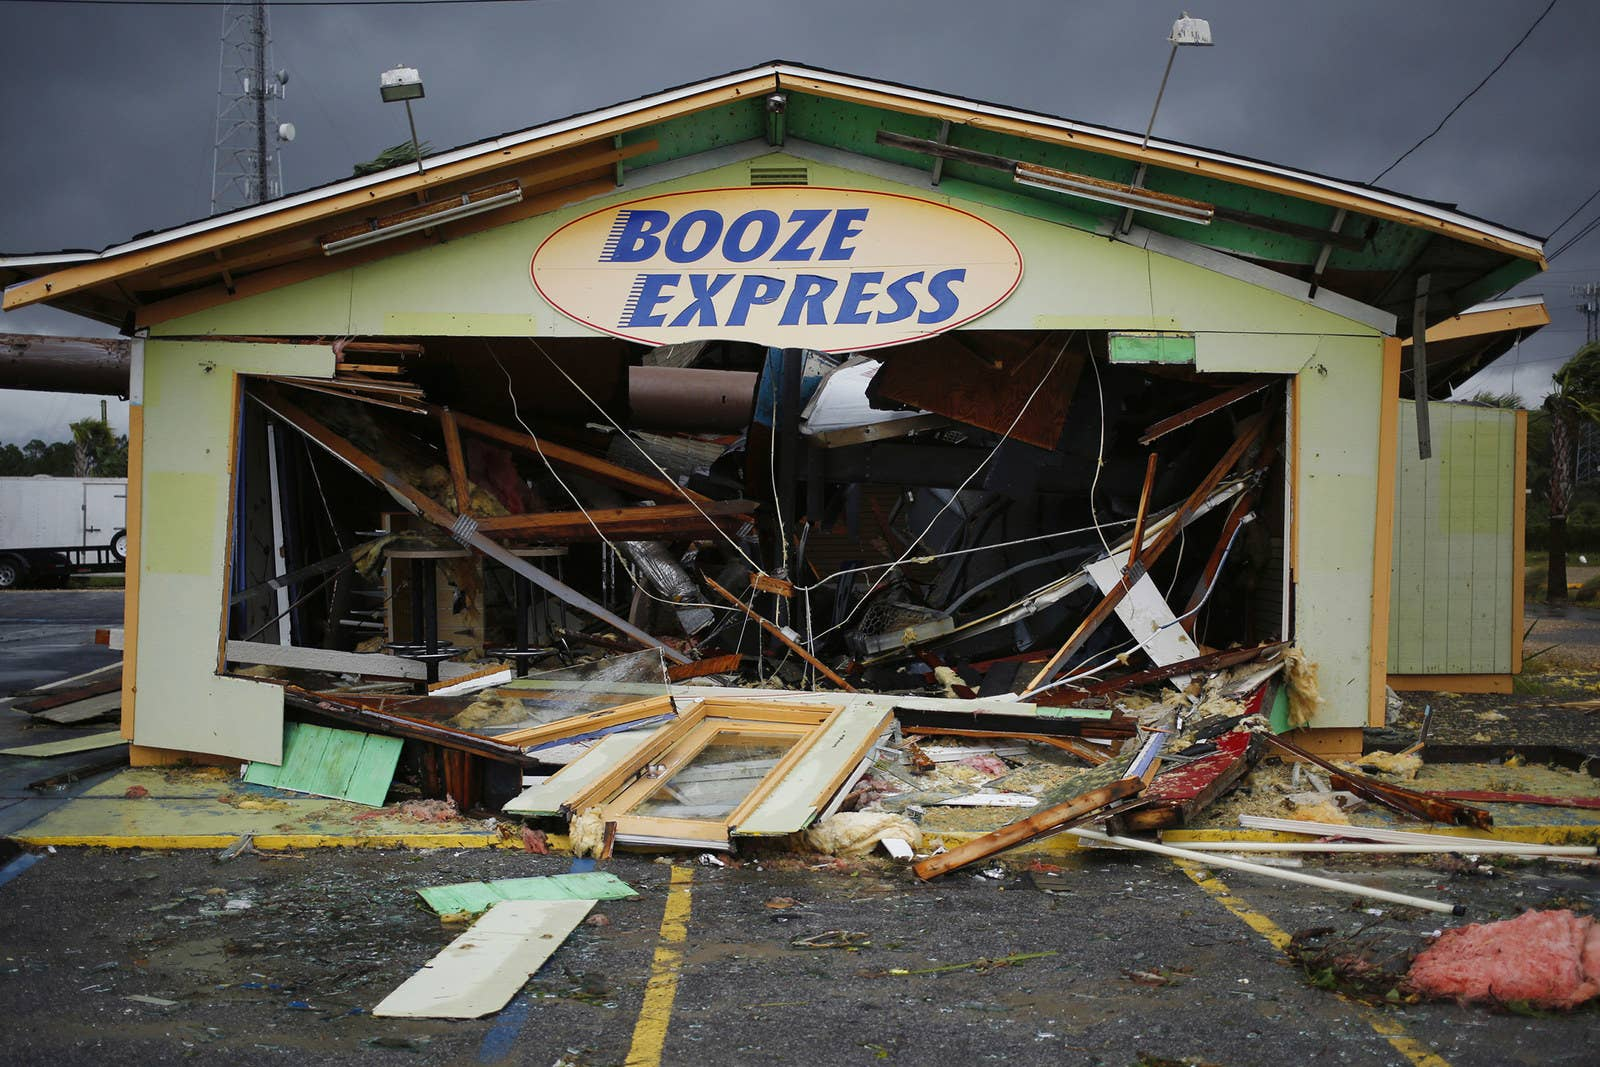 Debris lays on the ground of a Booze Express store in Panama City Beach, Florida.